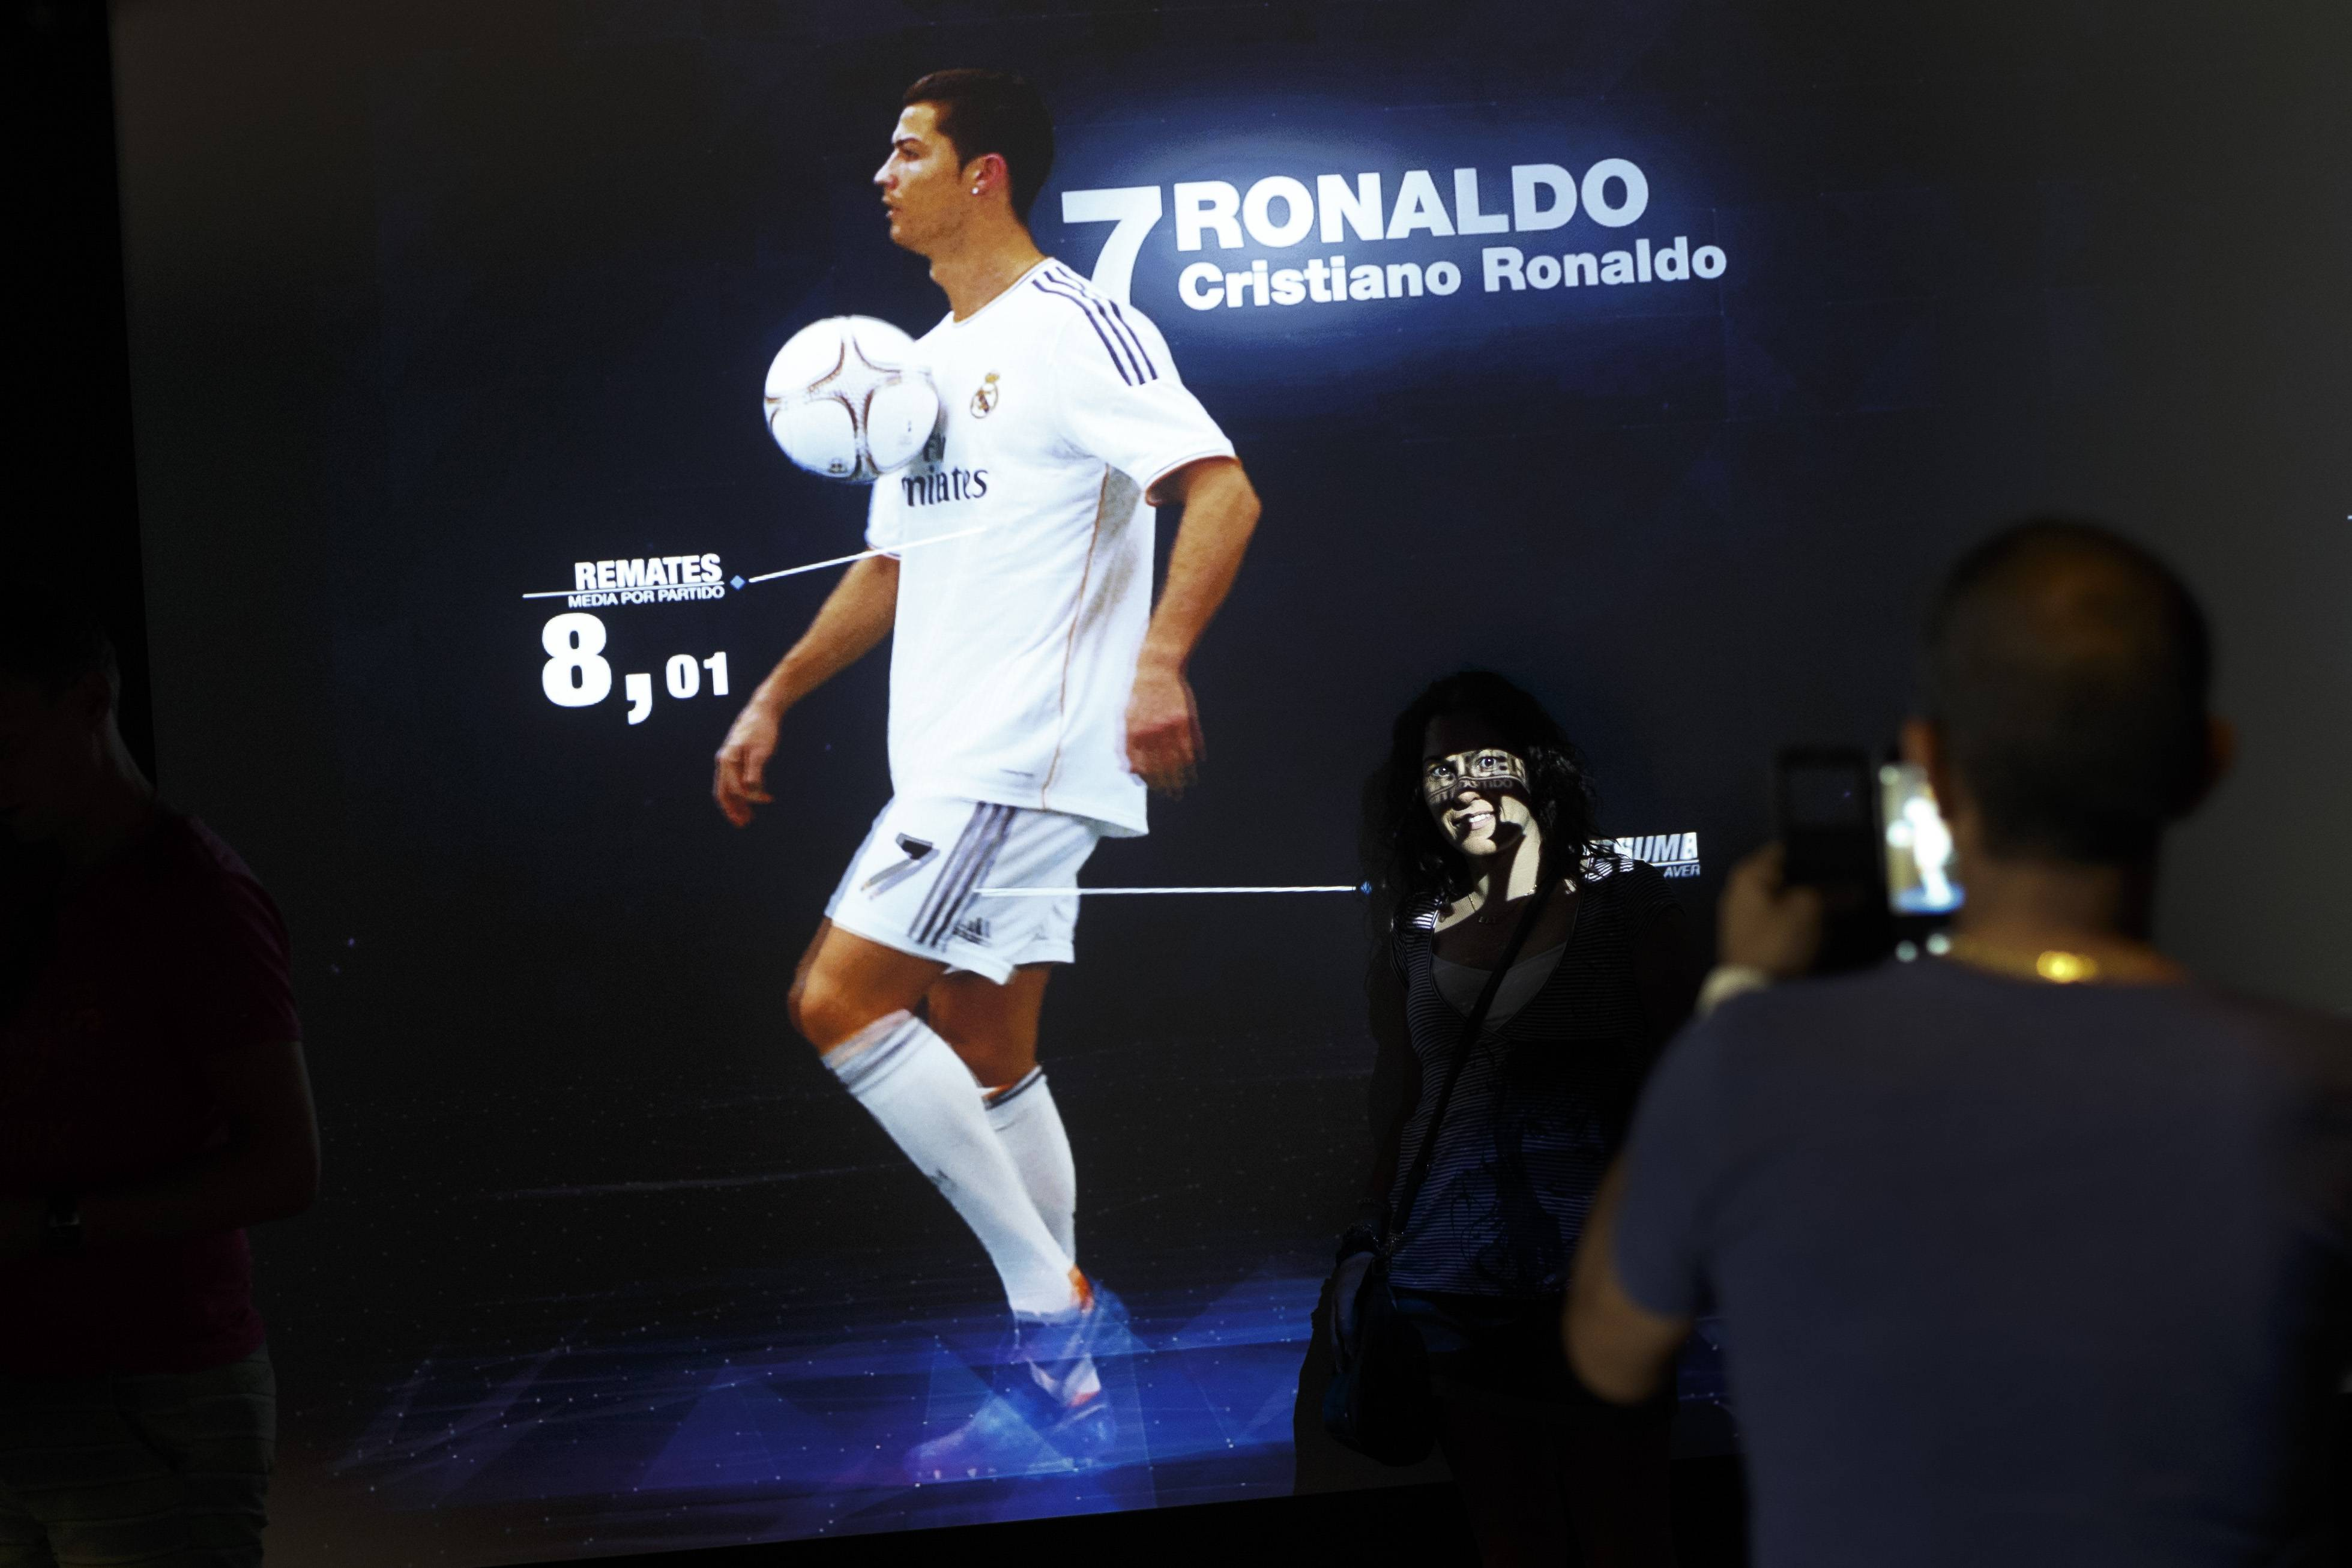 A Real Madrid's supporter takes a snapshot of a screen displaying the profile of Real Madrid's player Cristiano Ronaldo from Portugal at the museum of the Santiago Bernabeu stadium in Madrid, Spain.